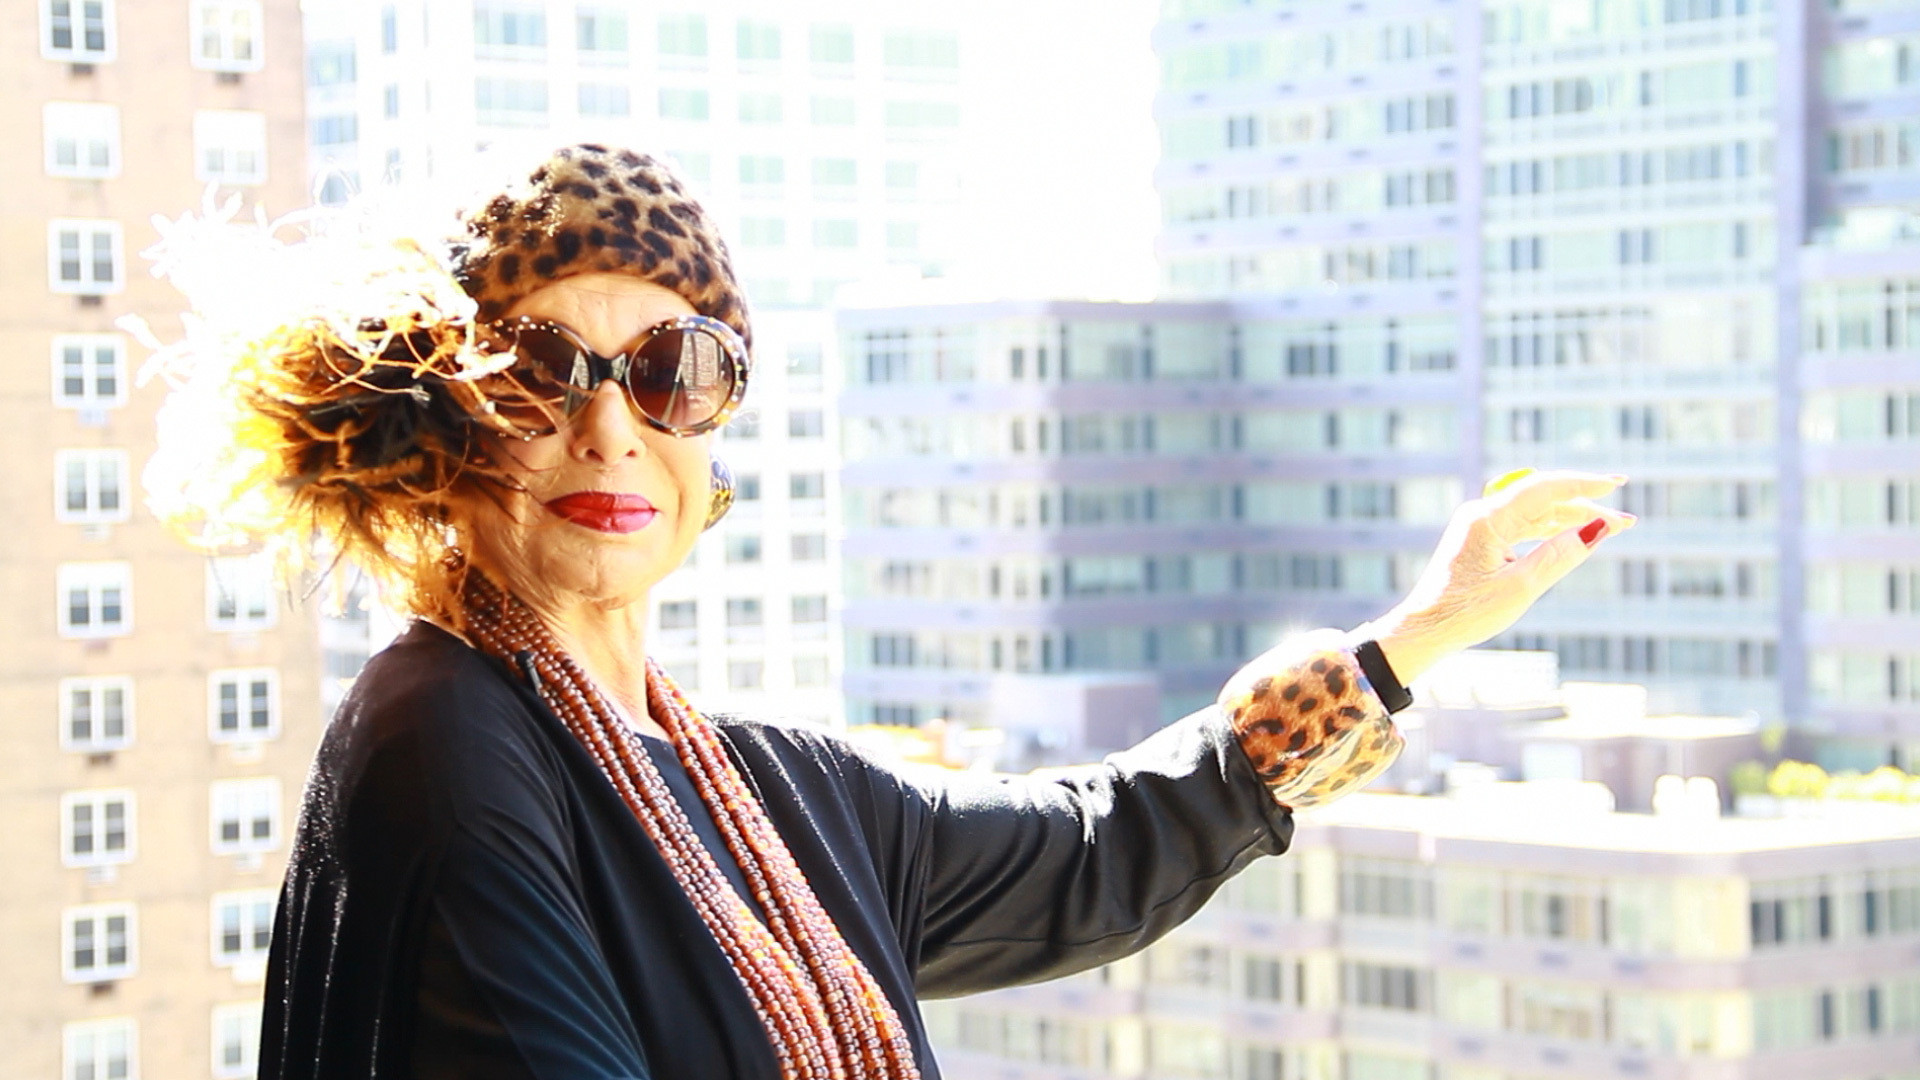 Lynn Dell in Advanced Style; Source: Ari Seth Cohen, New York City